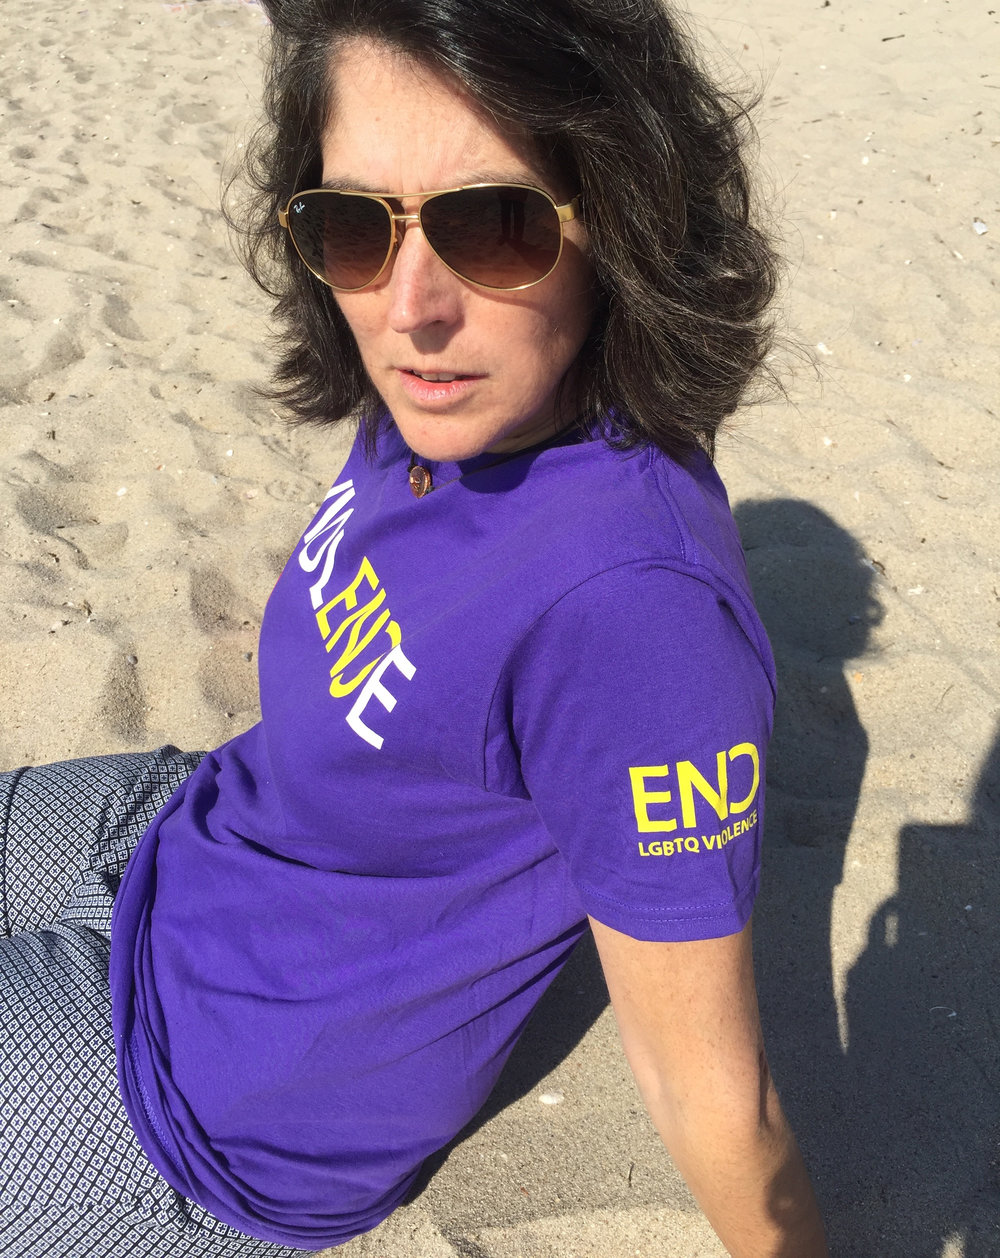 End #LGBTQ Violence with our purple tshirt